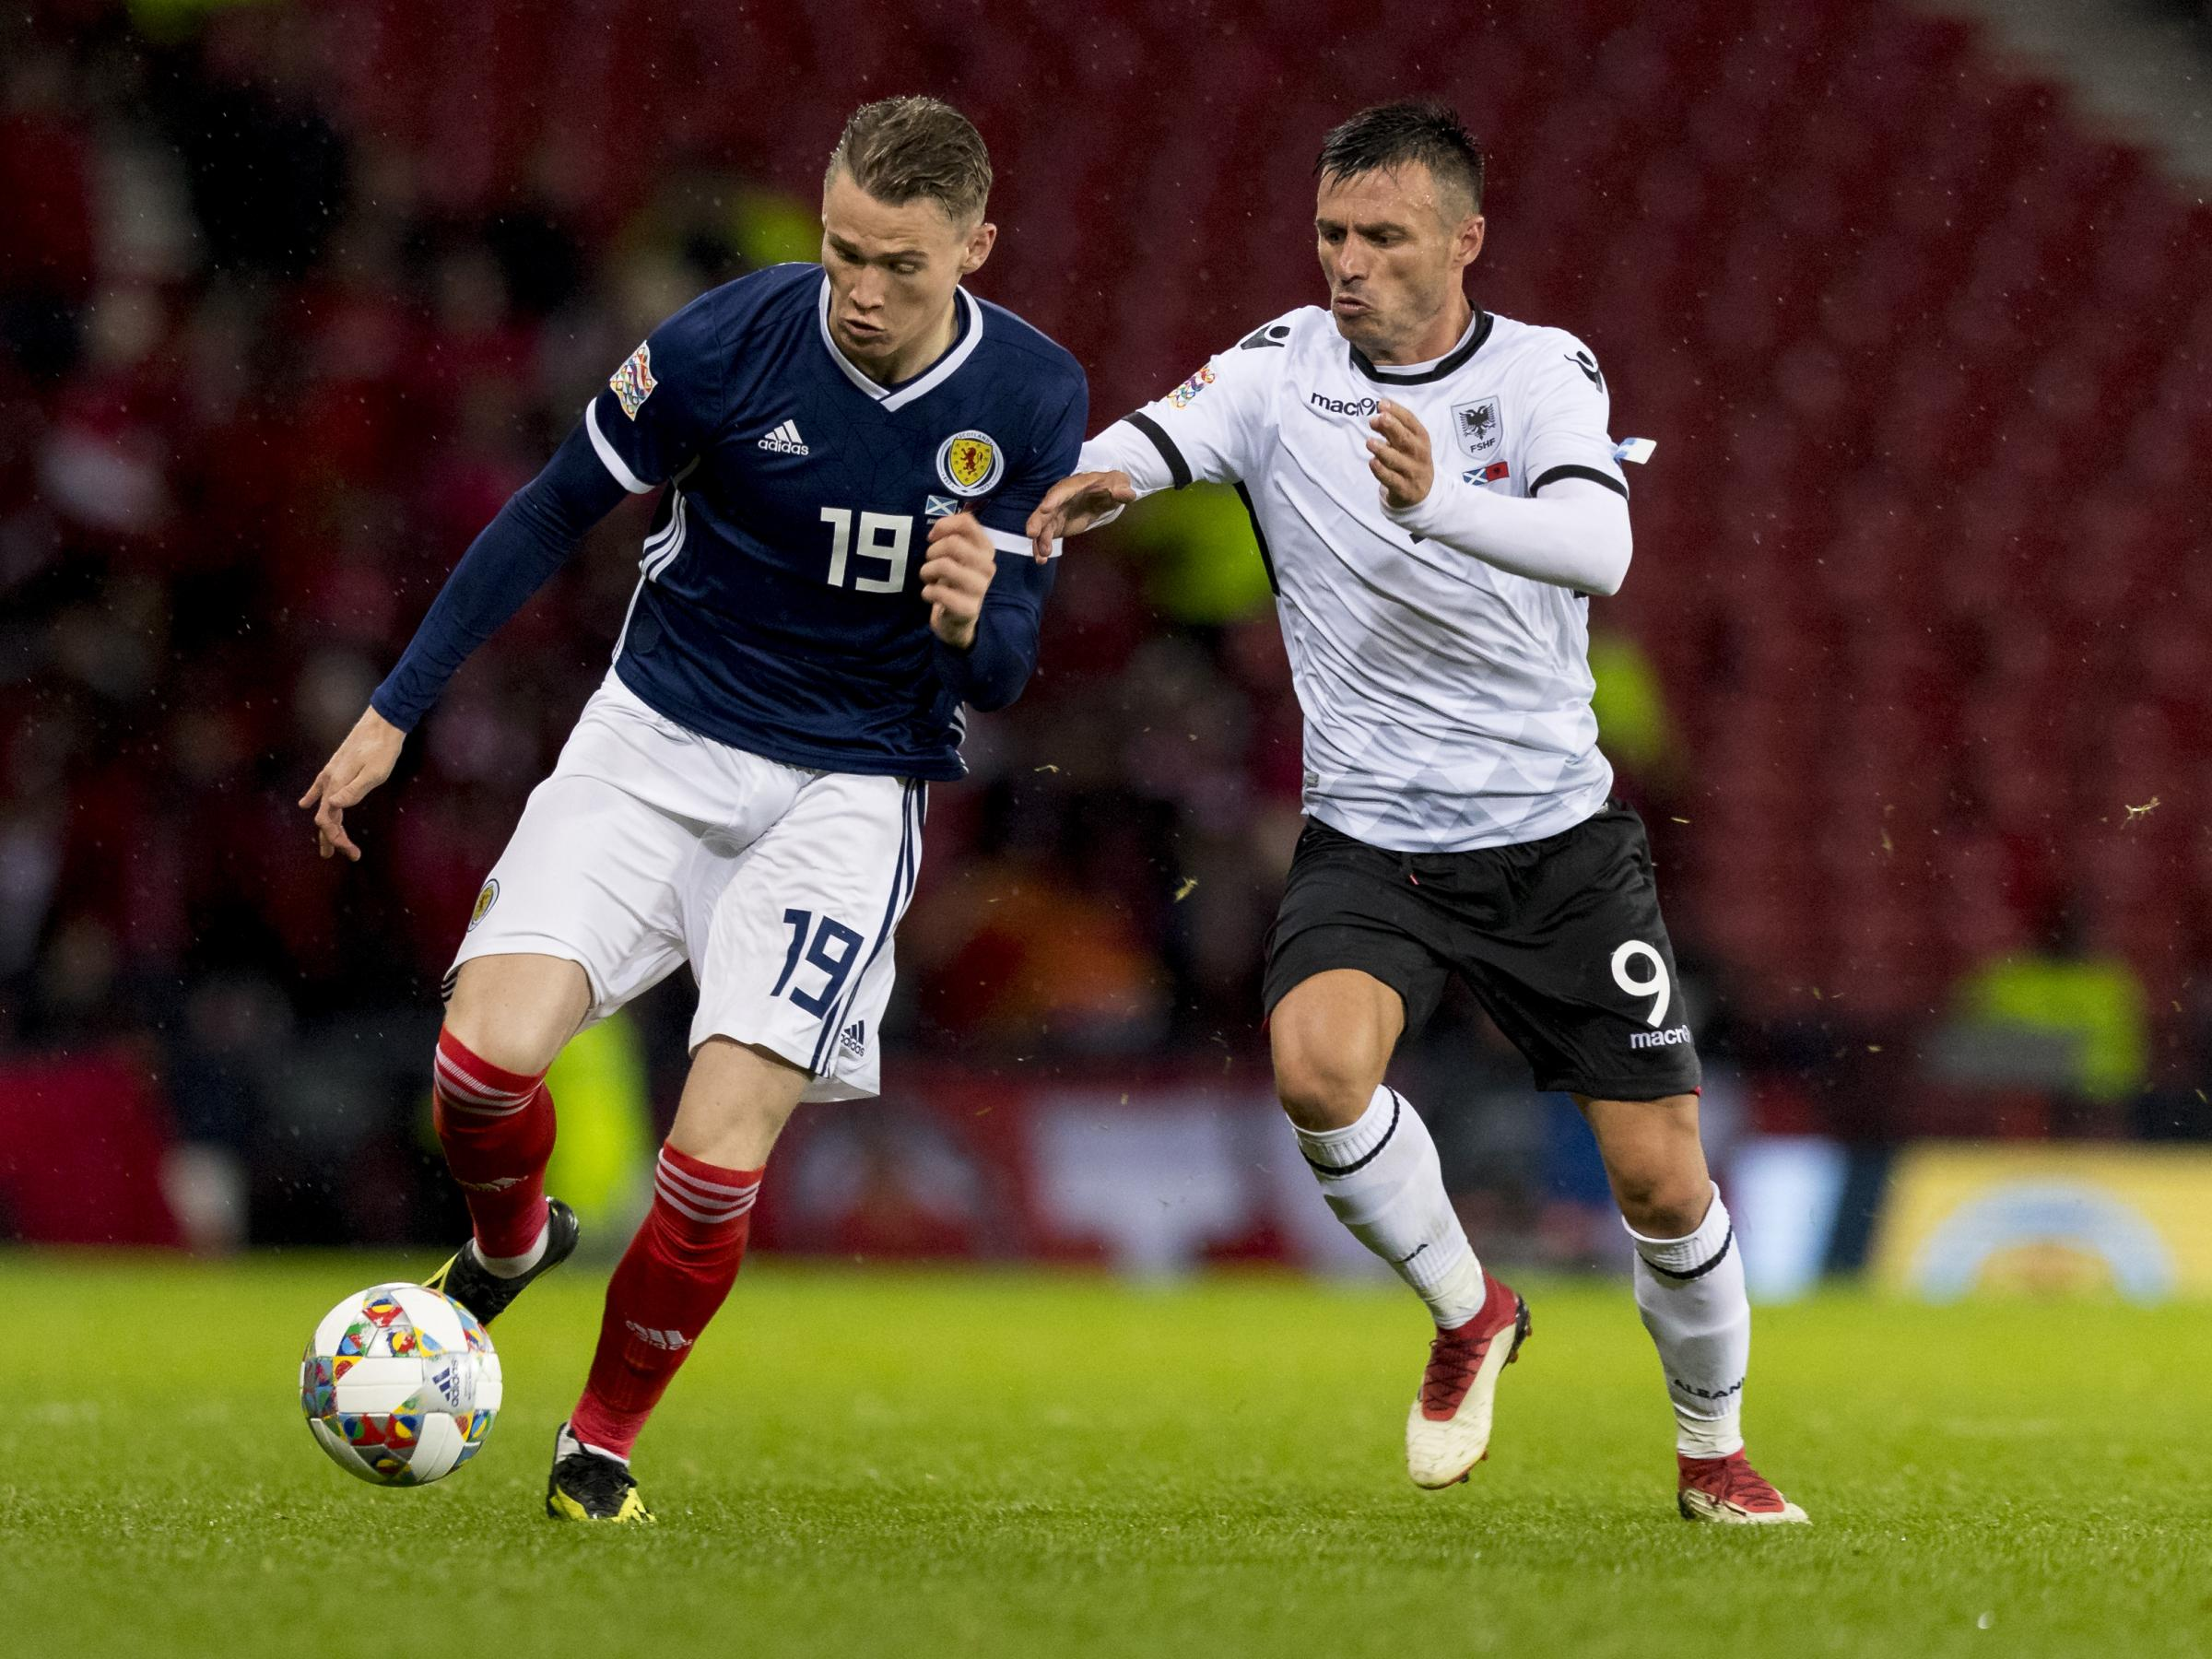 Celtic interested in McTominay deal